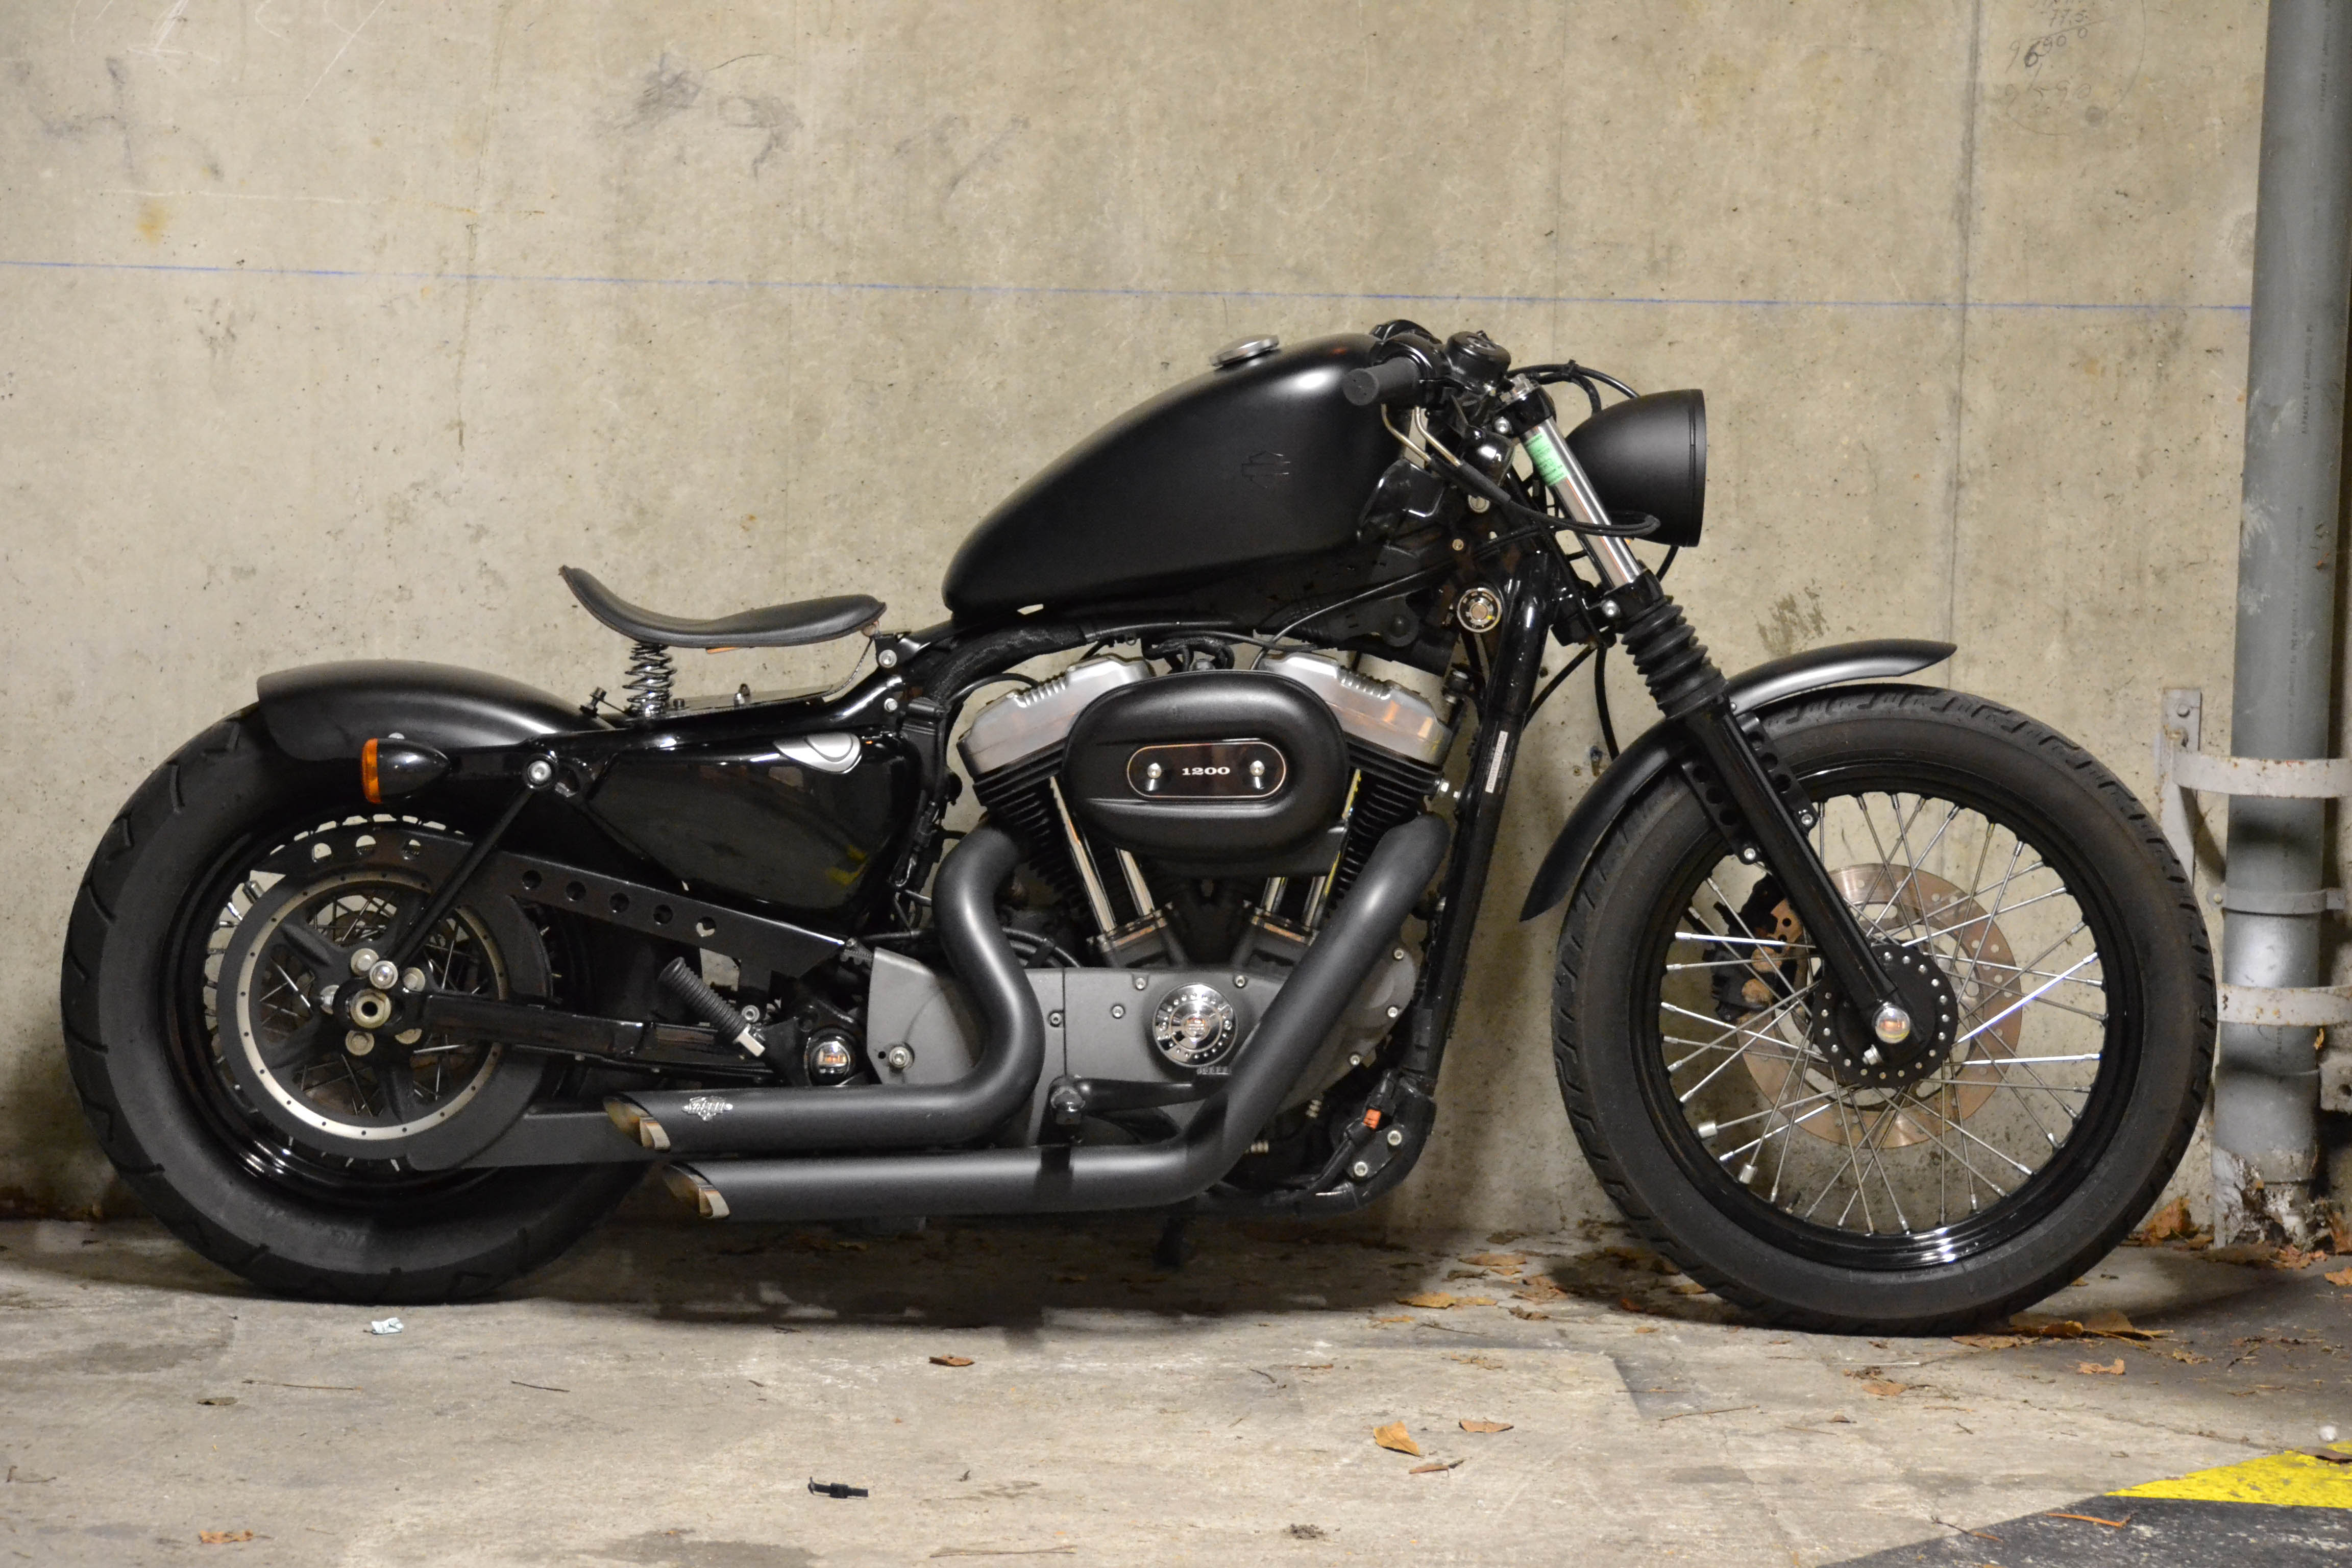 Harley Davidson Nightster E Wallpaper 4608x3072 165939